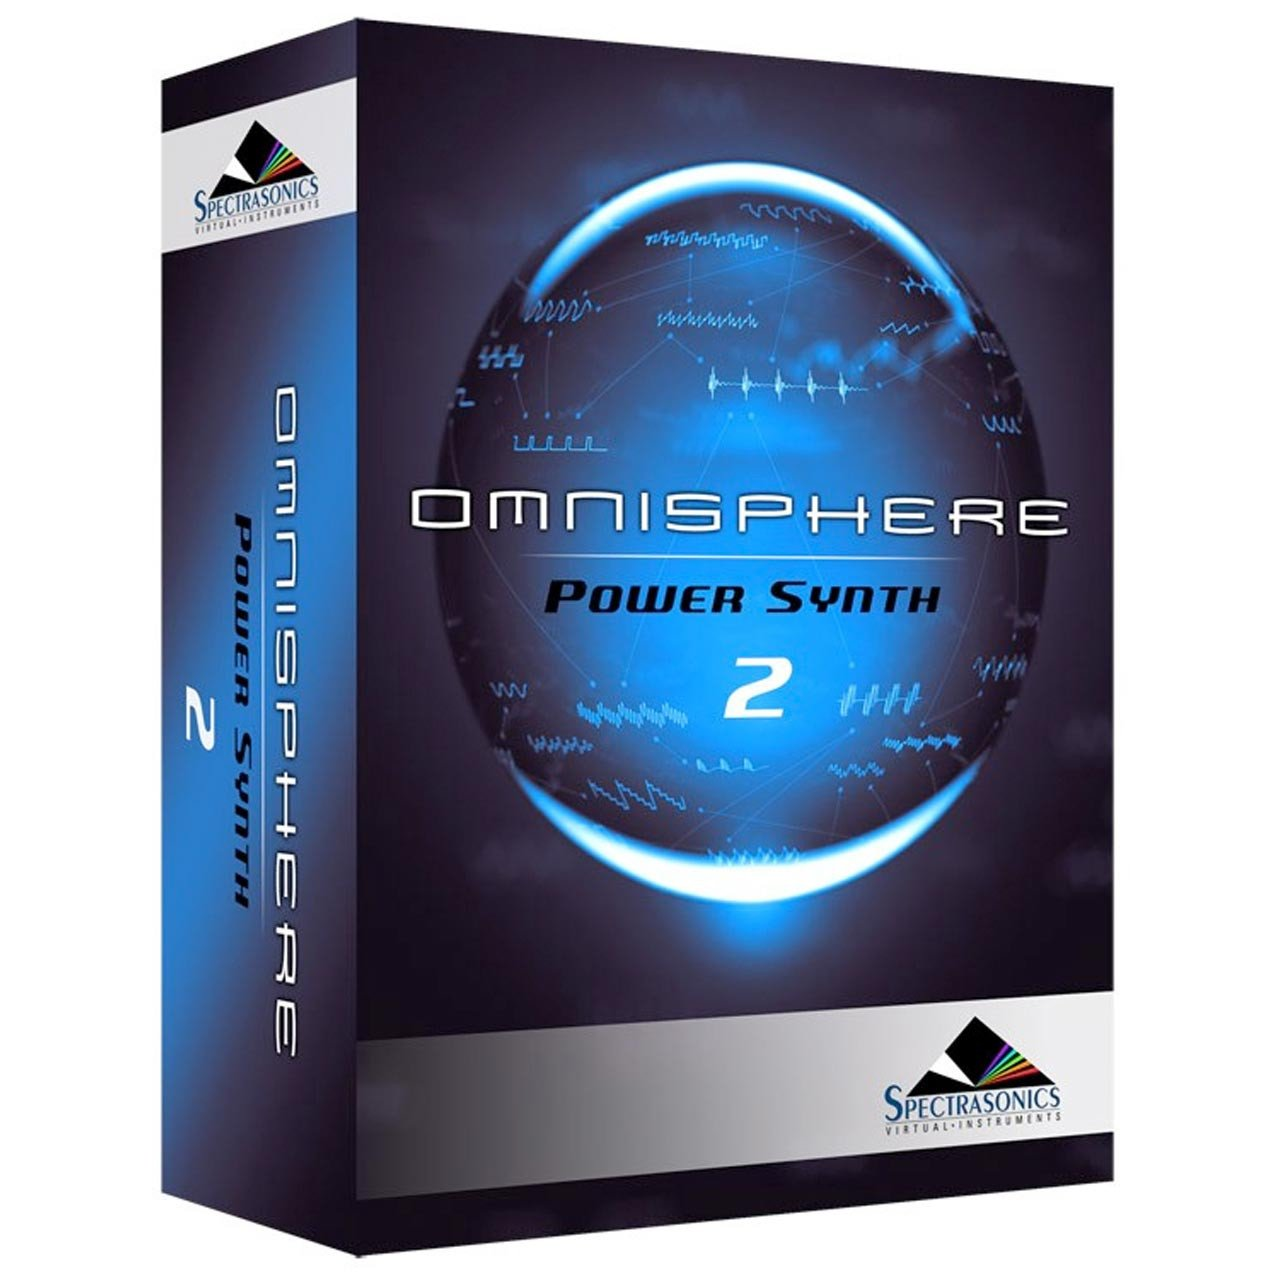 Spectrasonics Omnisphere 2 Power Synth